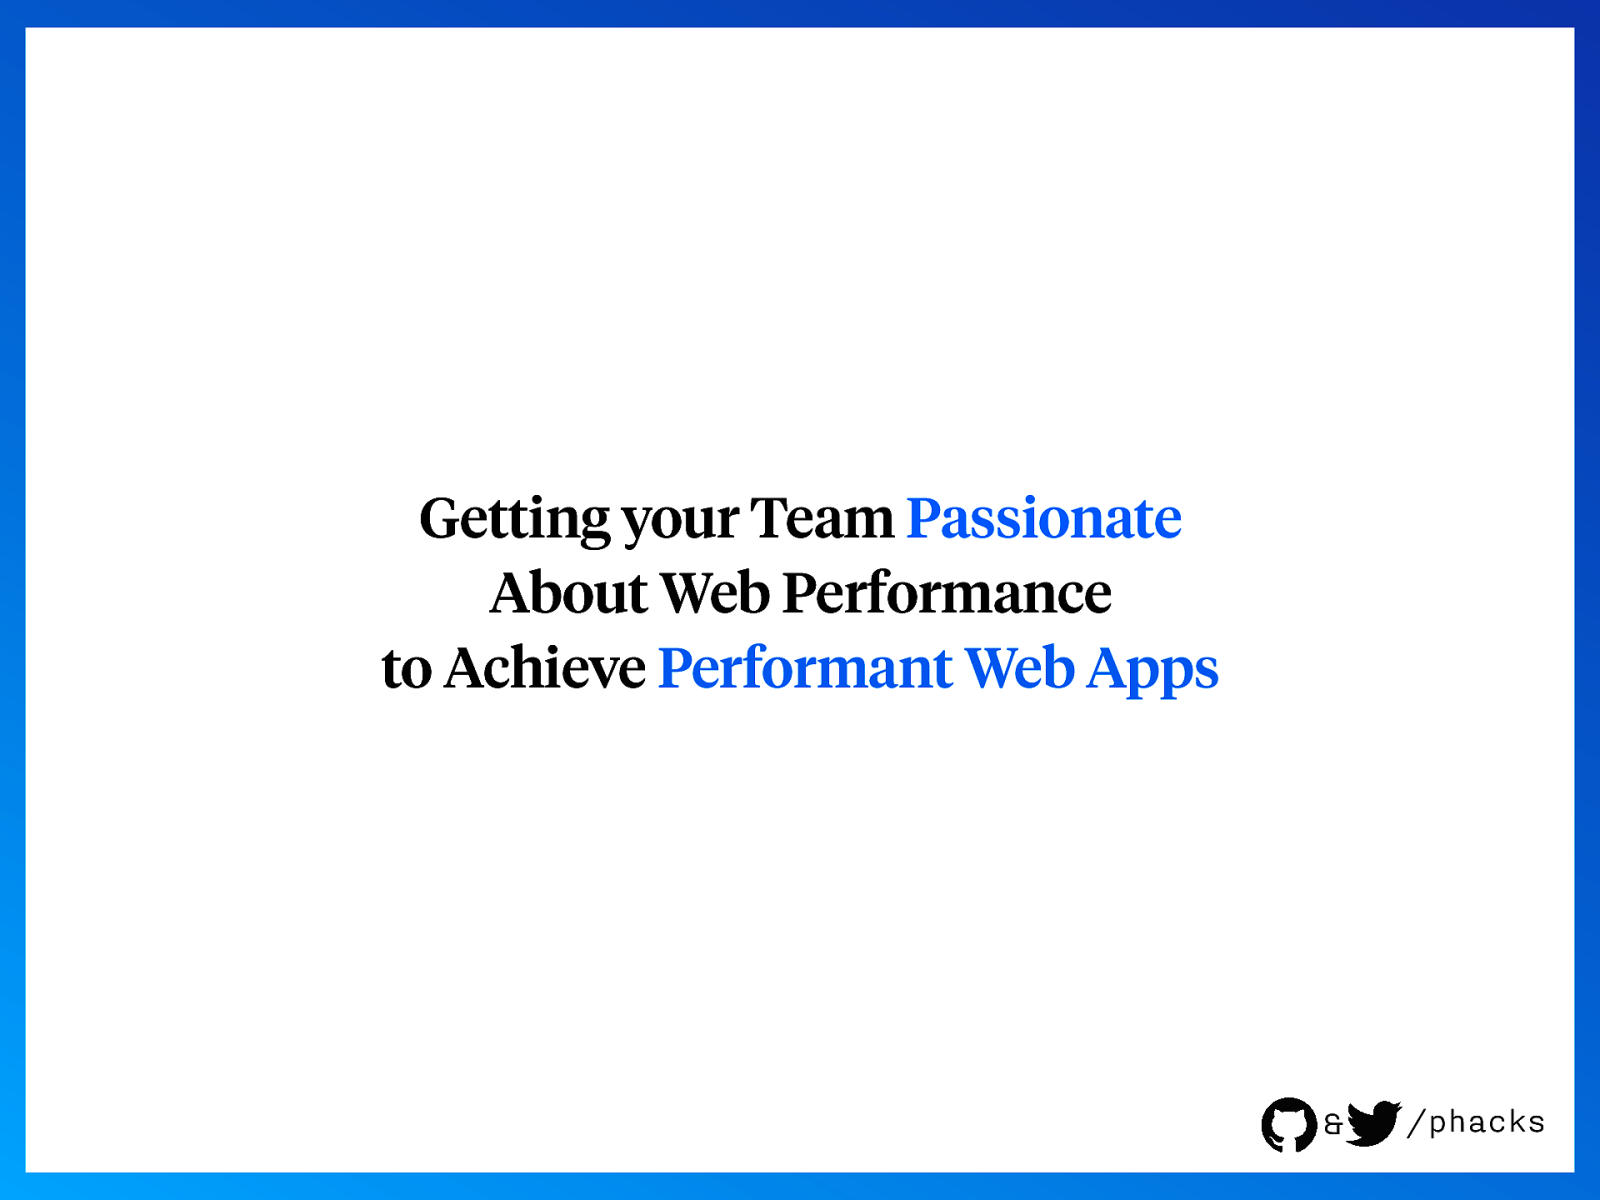 Brown Bag Lunch — Getting your Team Passionate About Web Performance  to Achieve Performant Web Apps by Nicolas Goutay